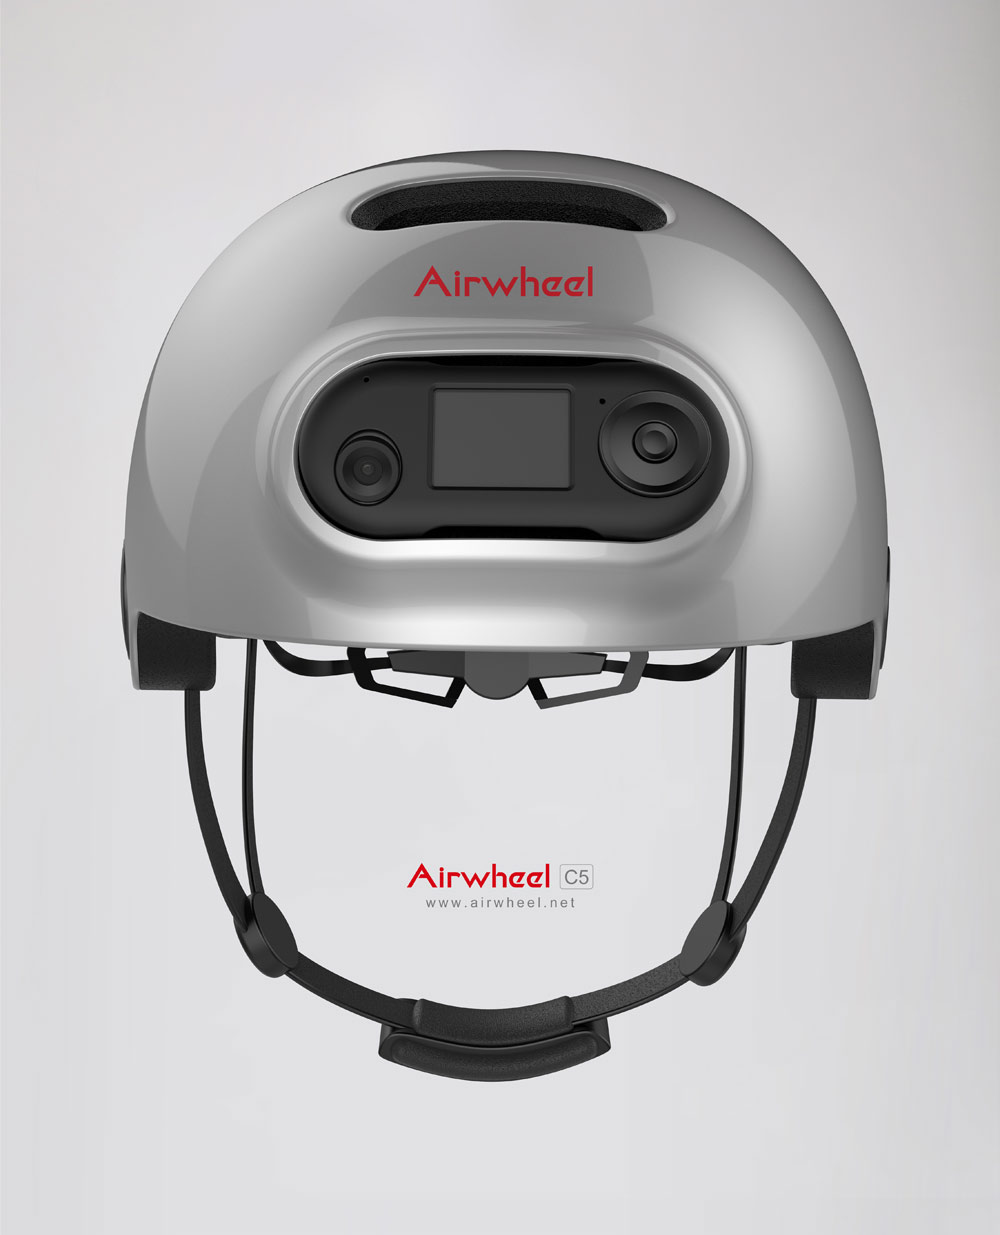 airwheel_c5